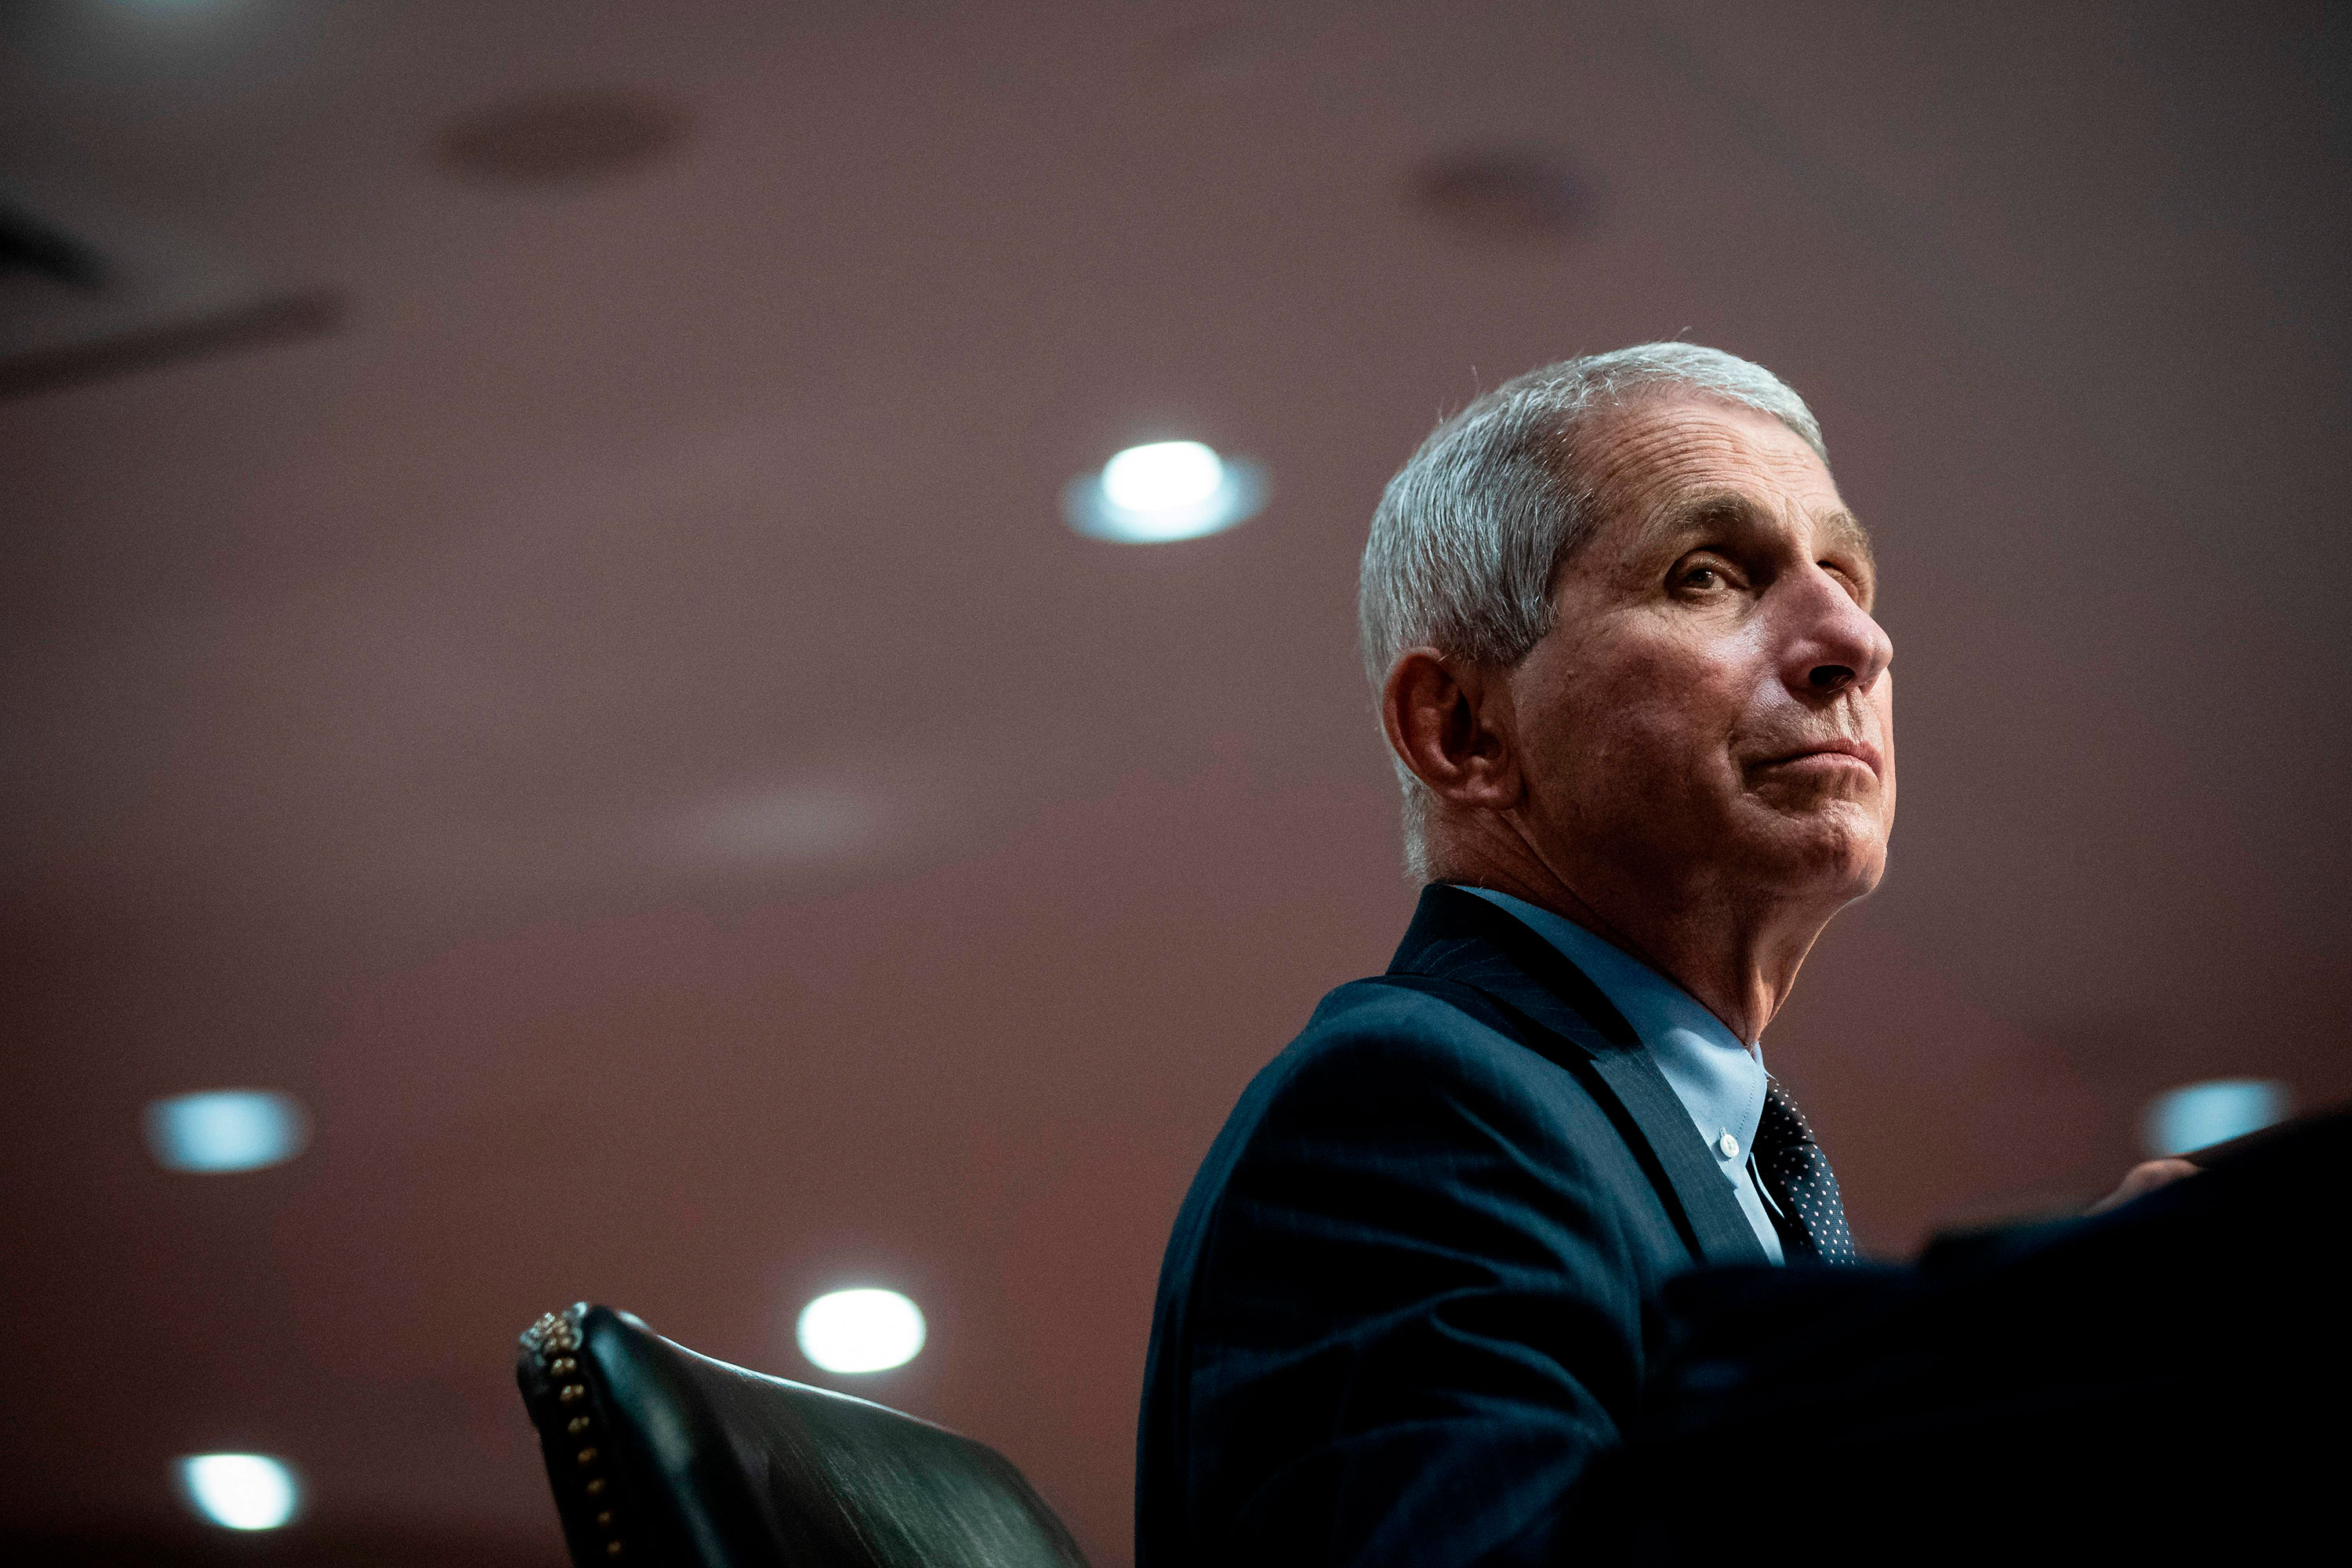 A 'building distrust' in public health agencies is 'the elephant in the room,' Fauci says